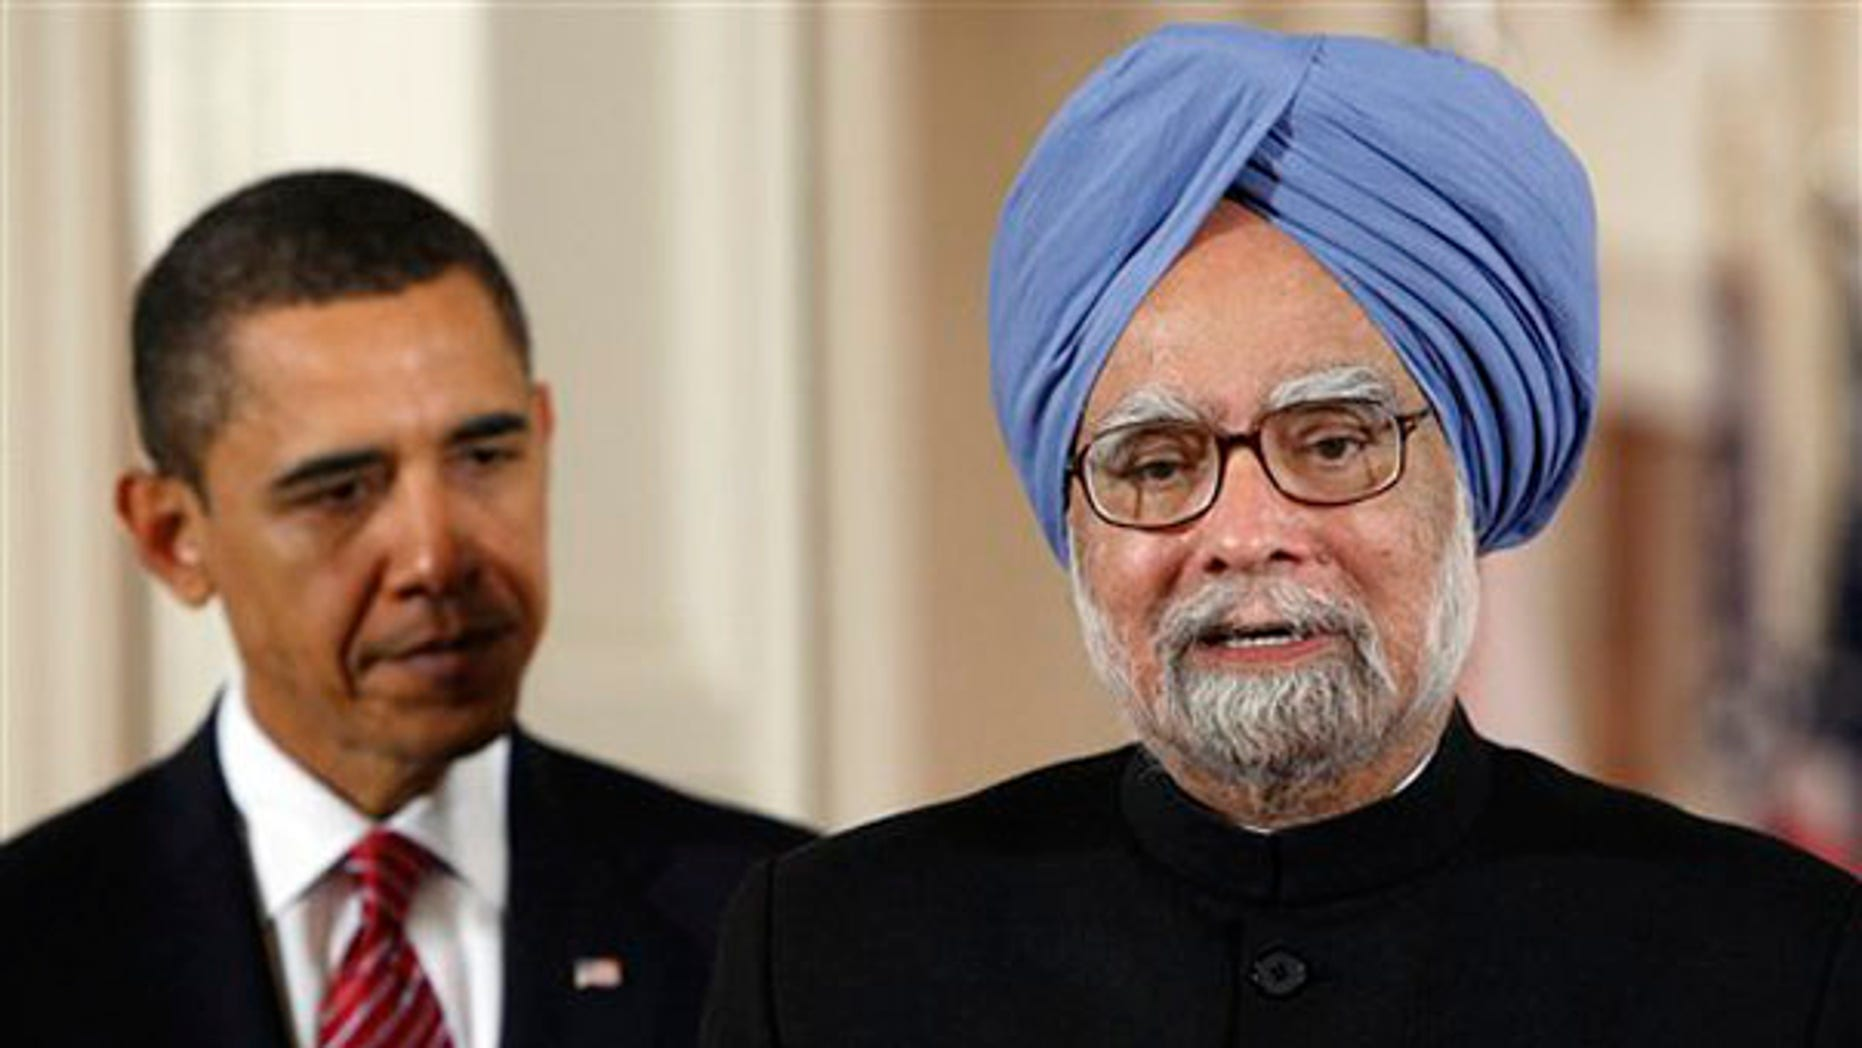 Tuesday: Prime Minister Manmohan Singh of India delivers his welcome address as President Obama listens during a state arrival ceremony in the East Room of the White House. (AP Photo)